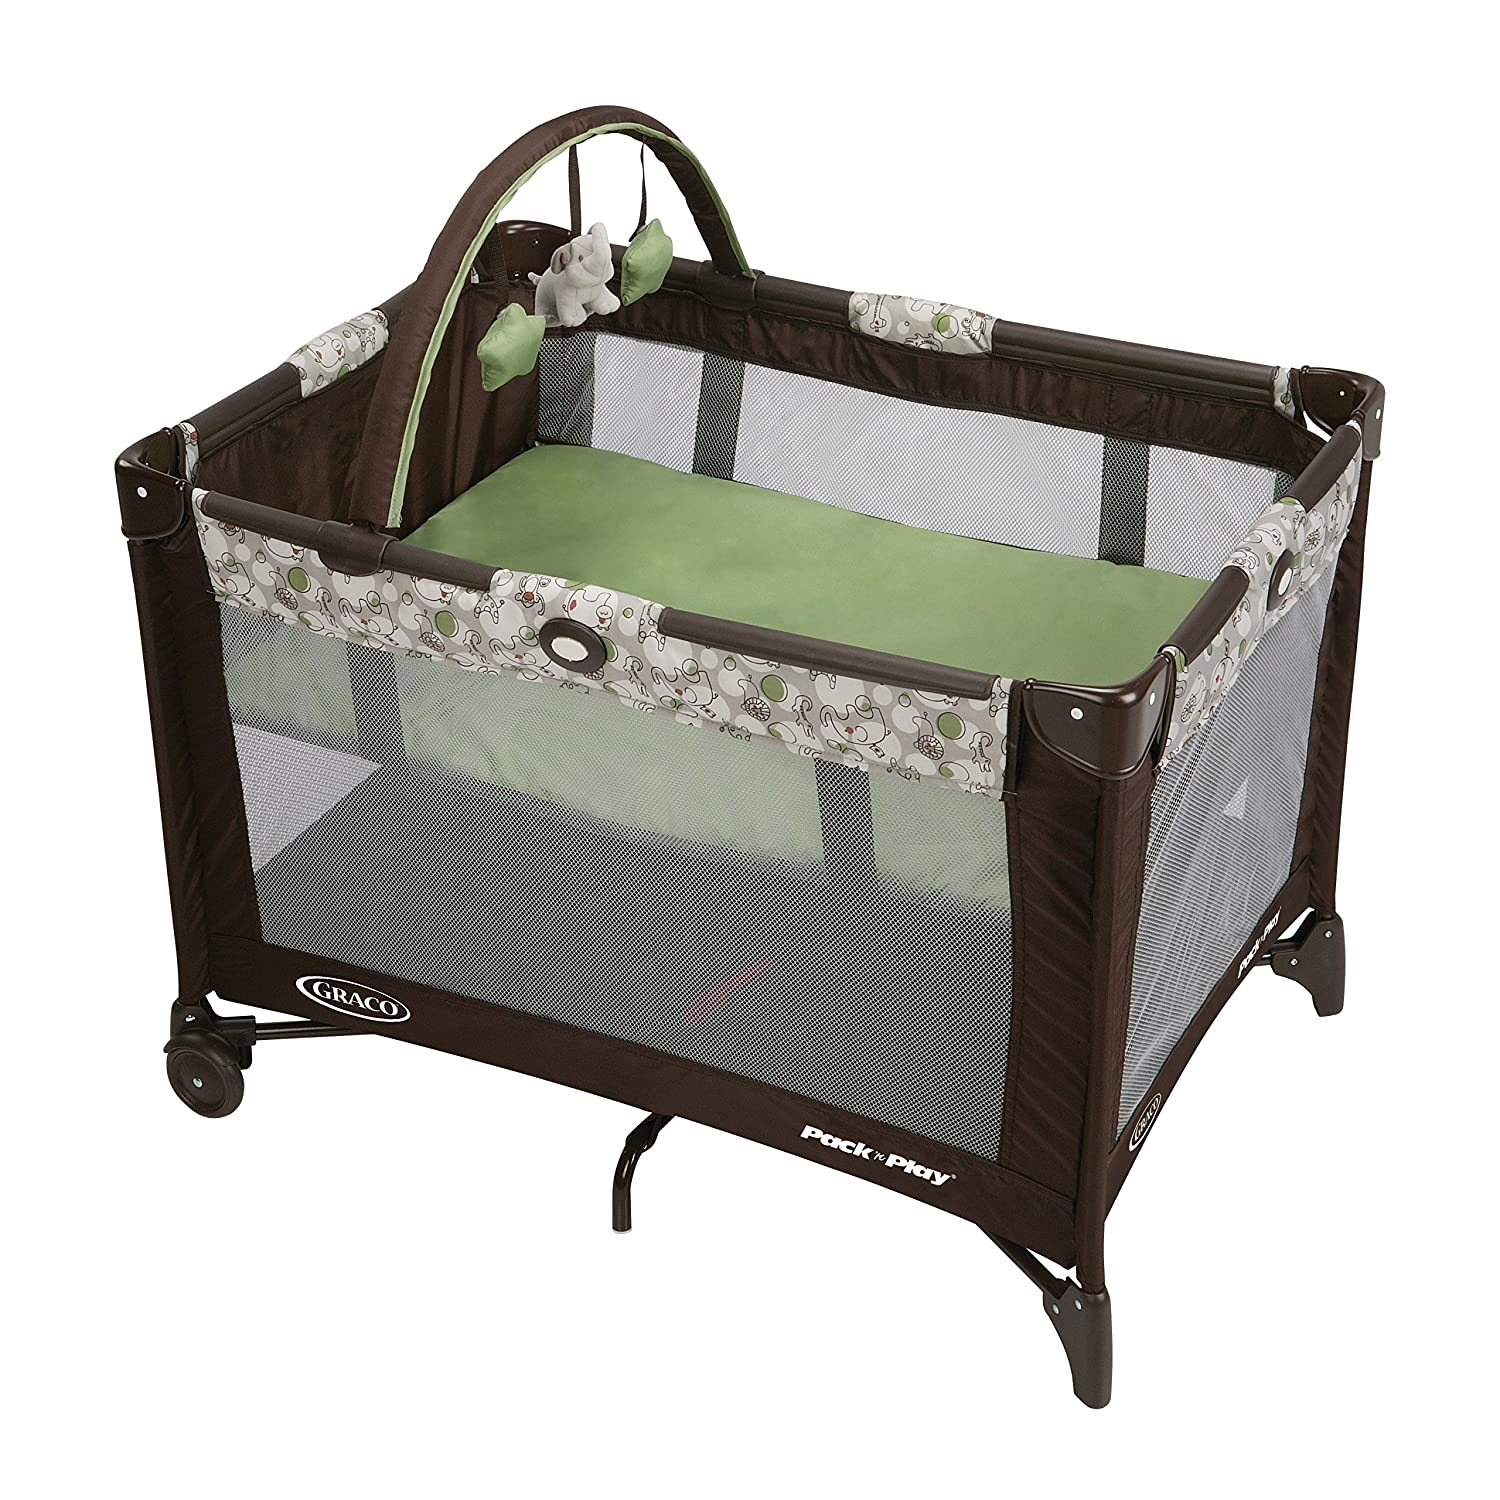 Graco Pack 'n Play On The Go Playard Stratus 1927561